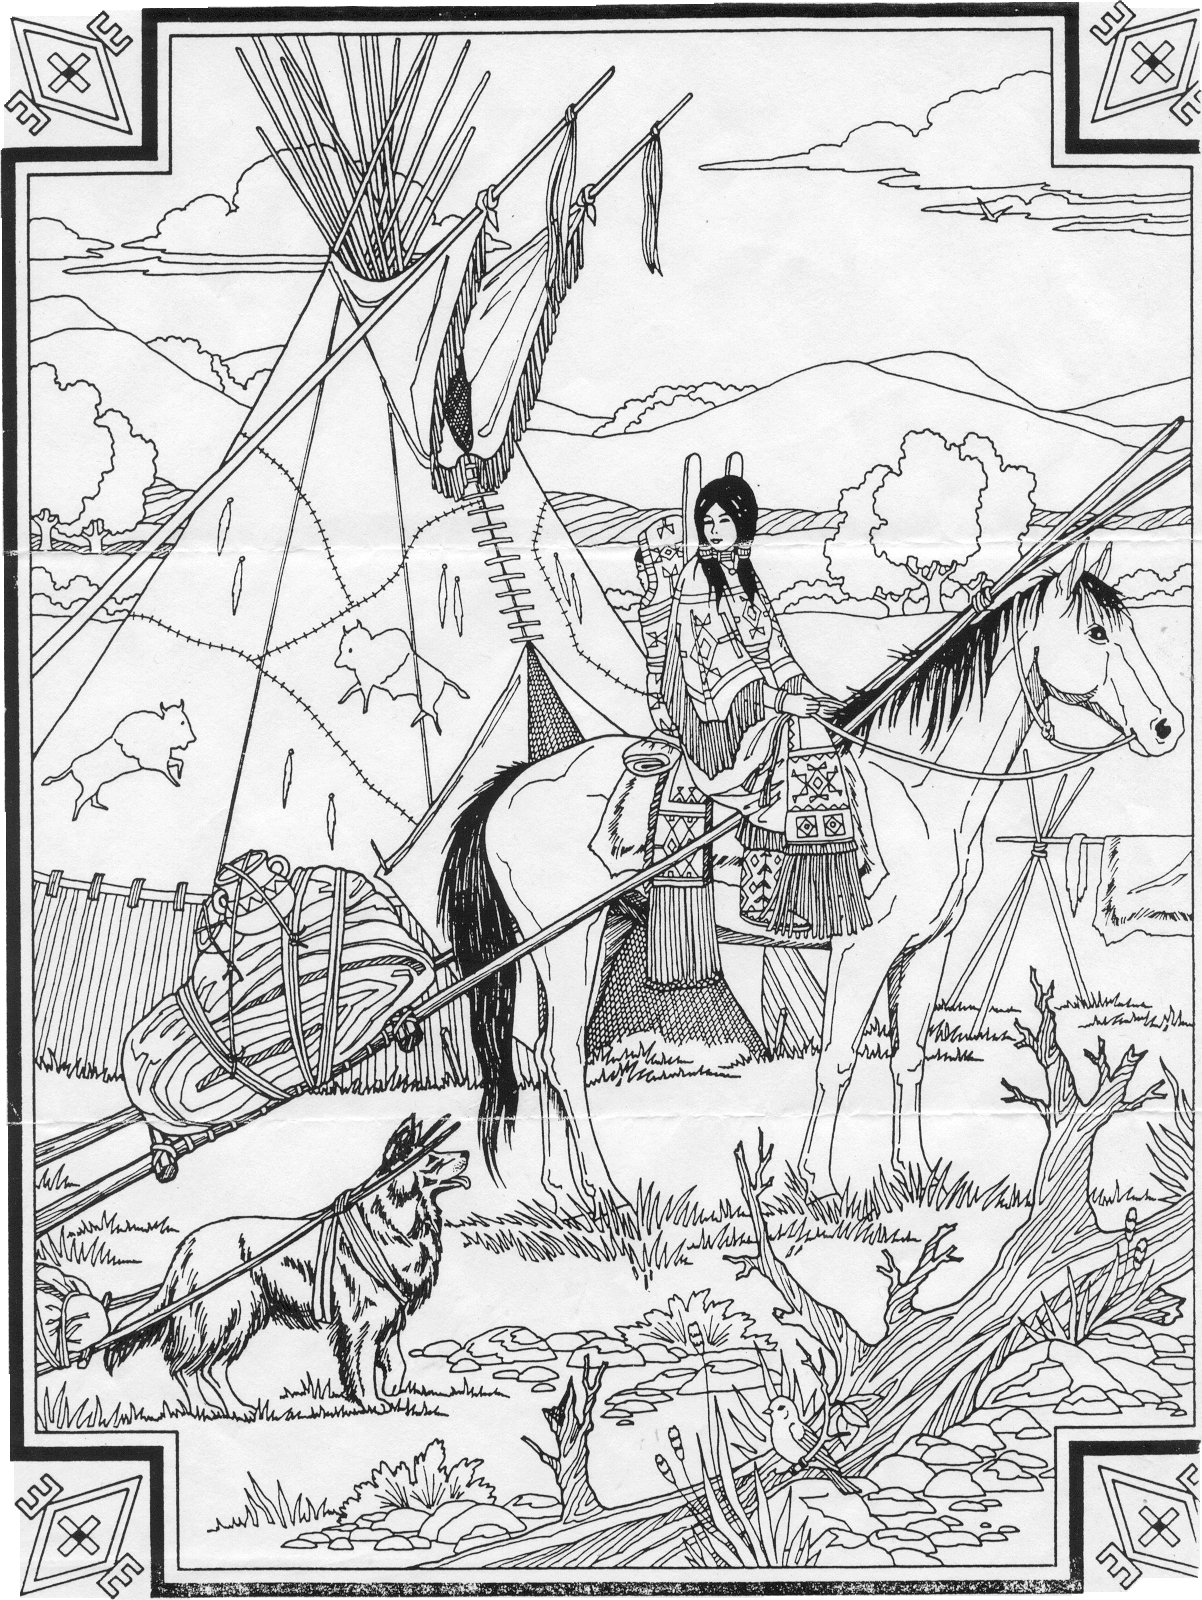 navajo indian coloring pages 23 best ideas indian coloring pages for adults home navajo coloring pages indian